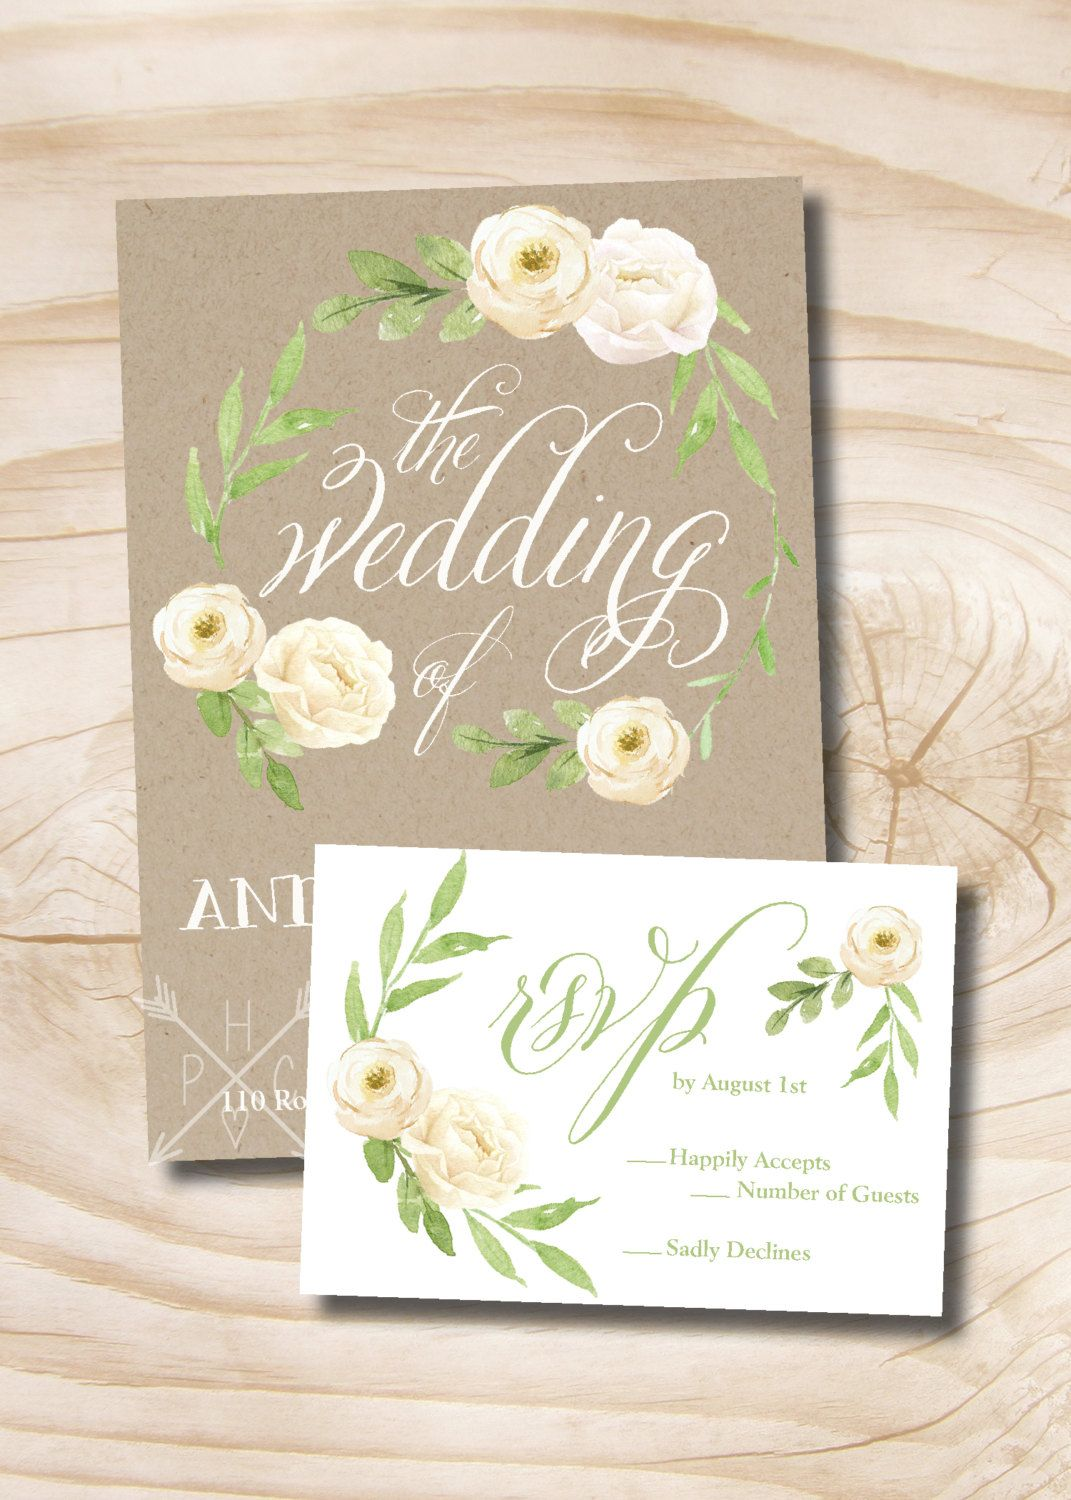 Watercolor floral wreath wedding invitation response card invitation watercolor floral wreath wedding invitation response card invitation suite foliage floral romantic stopboris Choice Image